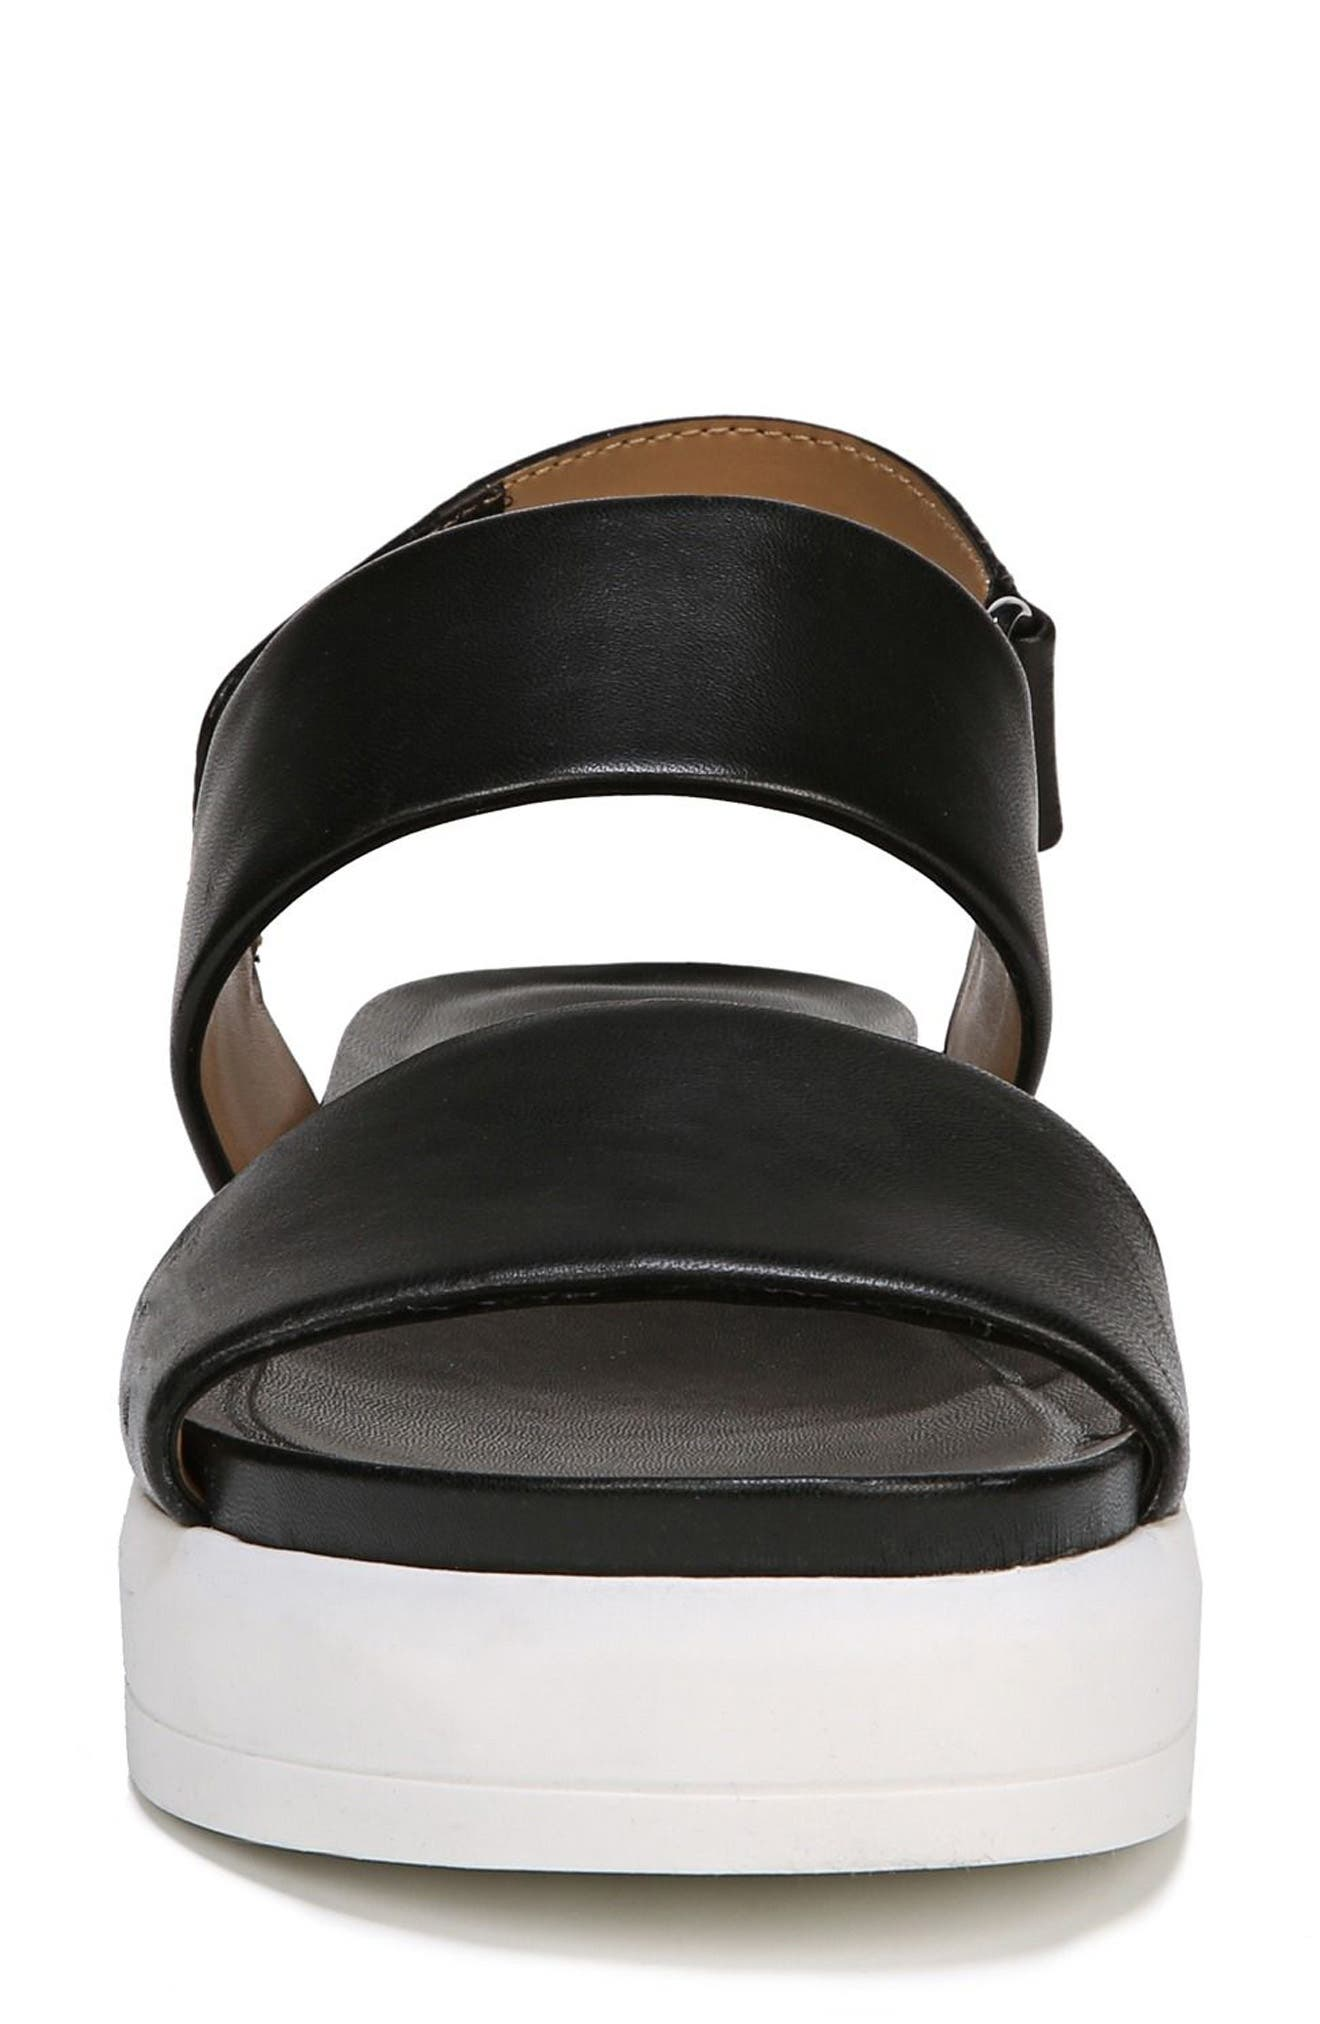 SARTO by Franco Sarto Kenan Platform Sandal,                             Alternate thumbnail 4, color,                             BLACK LEATHER